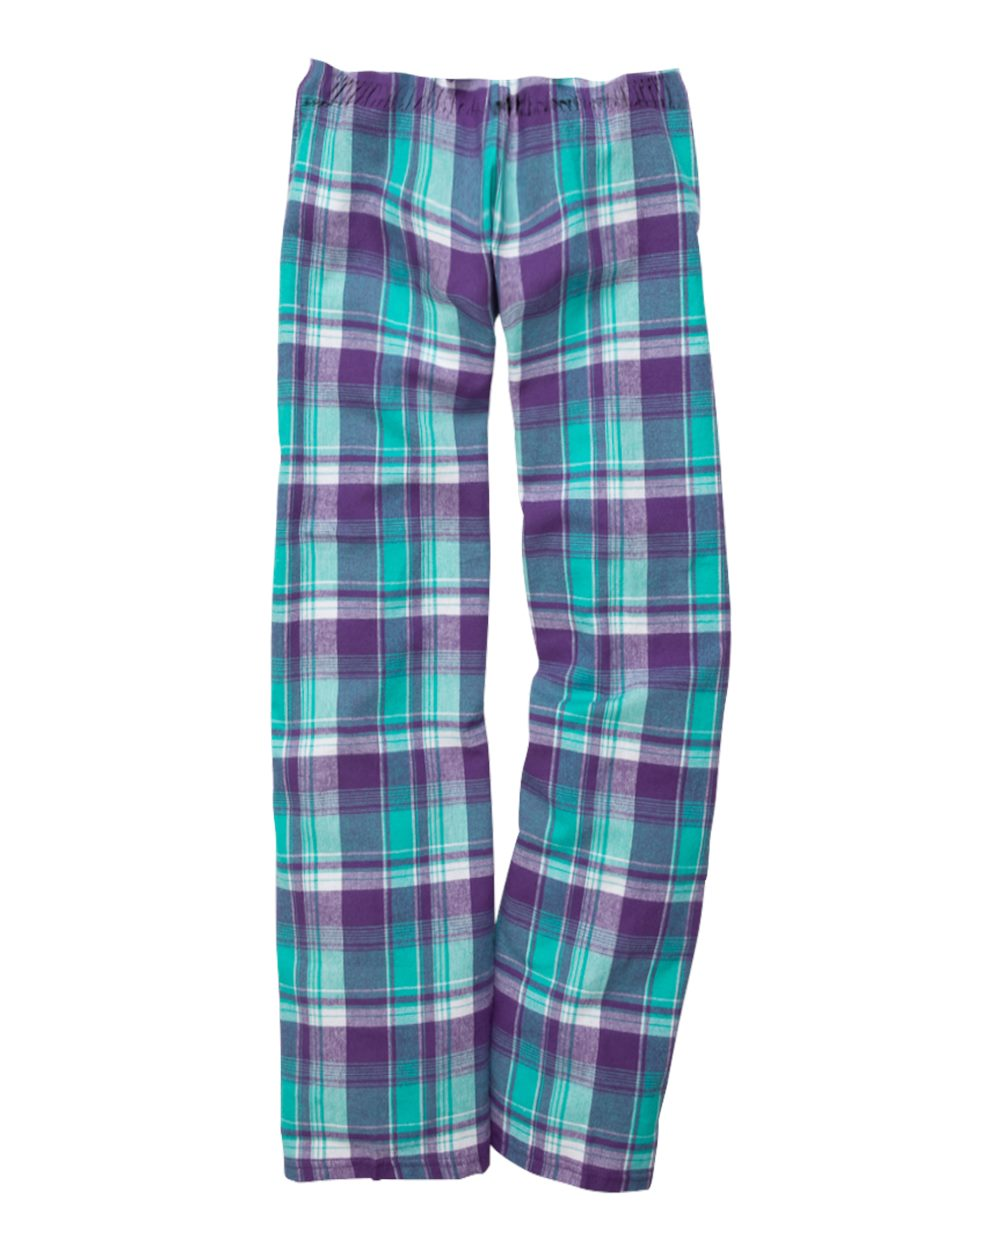 Boxercraft Y20 - Youth Flannel Pants with Pockets